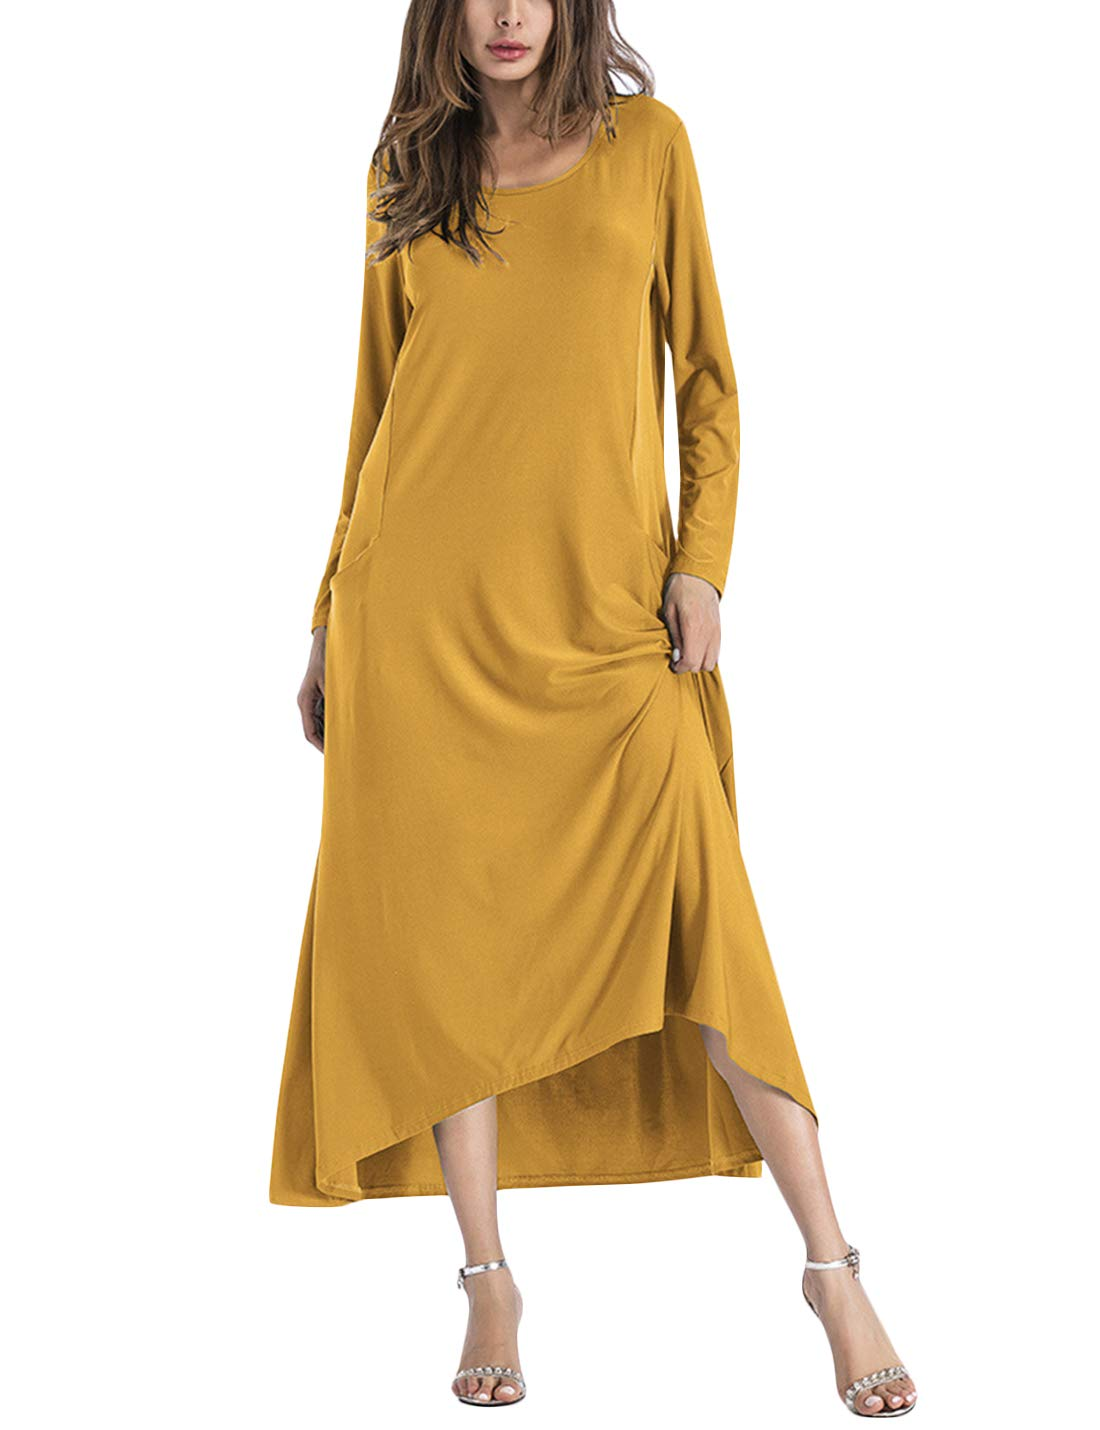 Available at Amazon: Tanming Women's Spring Casual Round Neck Long Sleeve Flared Big Swing Maxi Dress